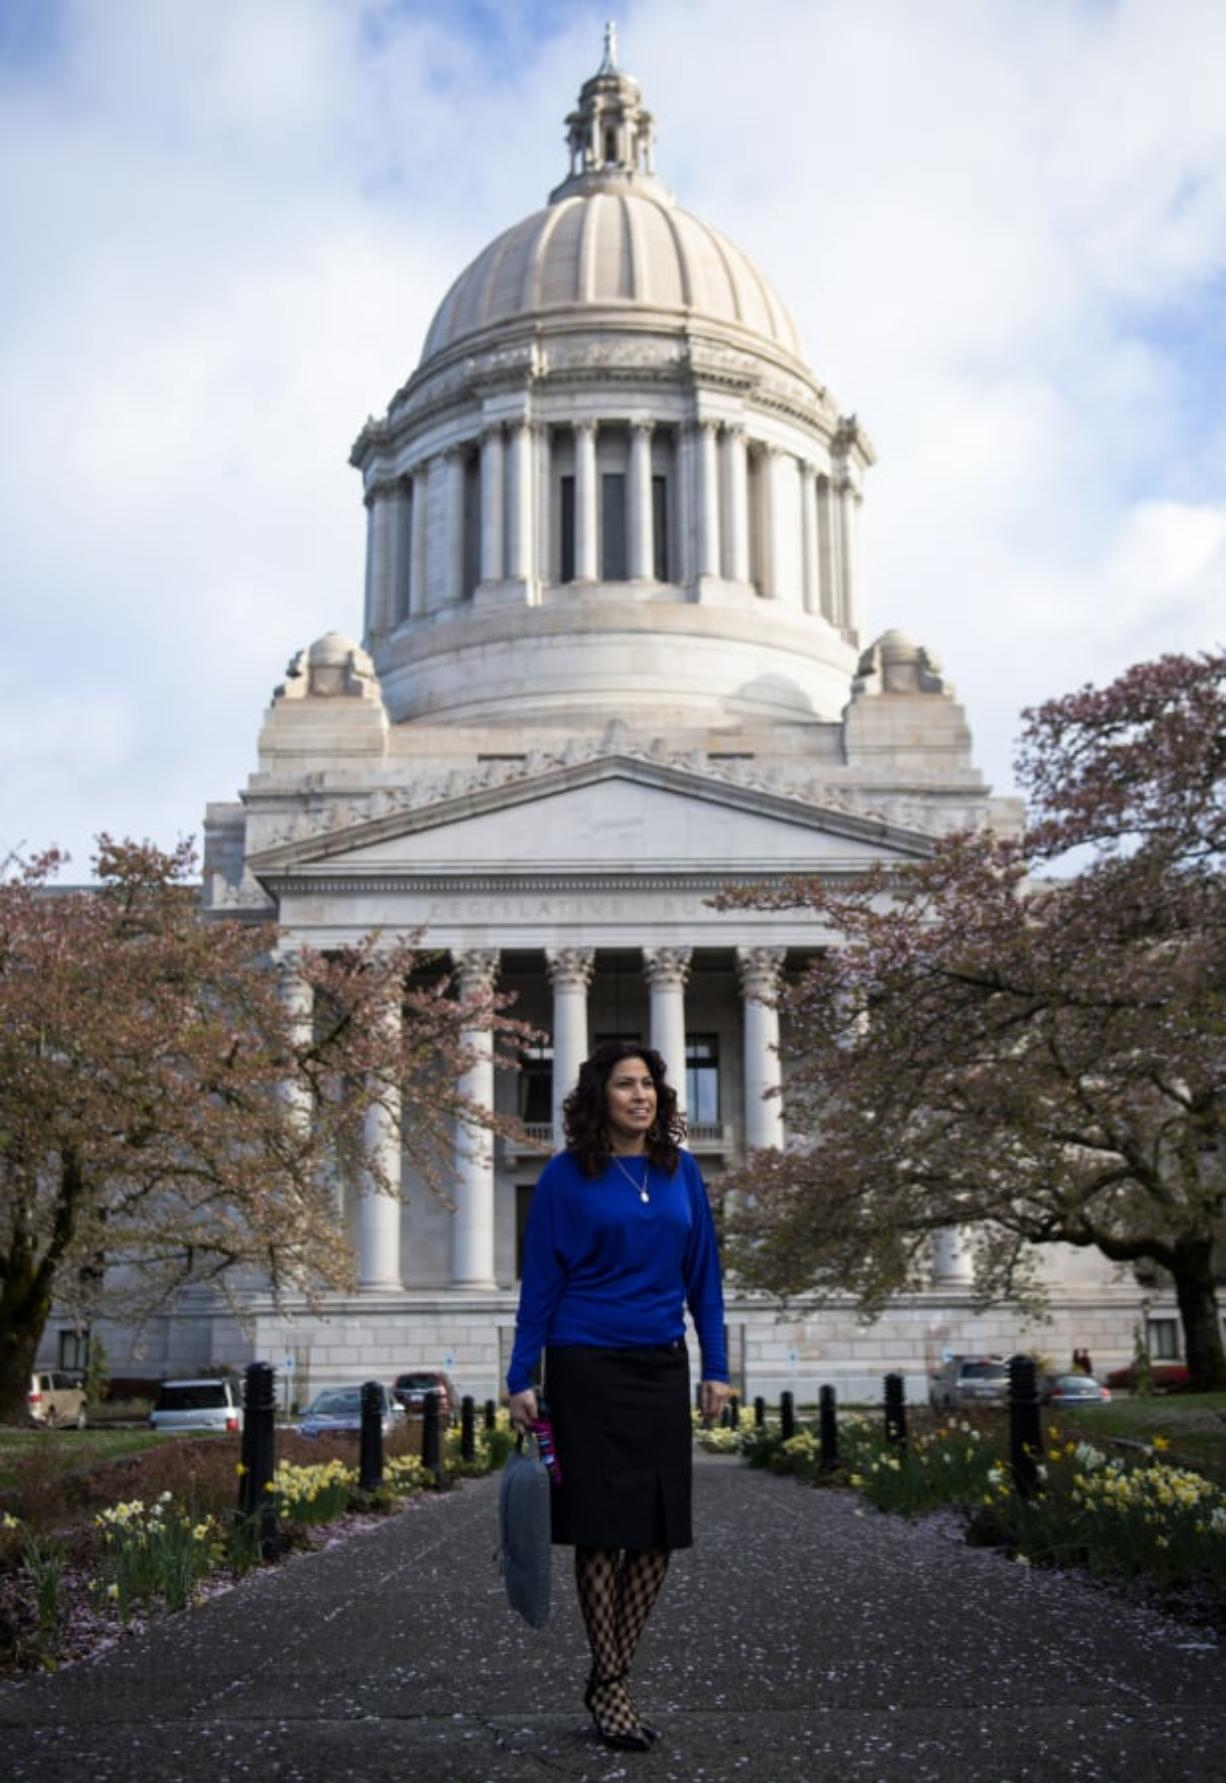 Rep. Monica Stonier, D-Vancouver, is one of several candidates vying to succeed House Speaker Frank Chopp.